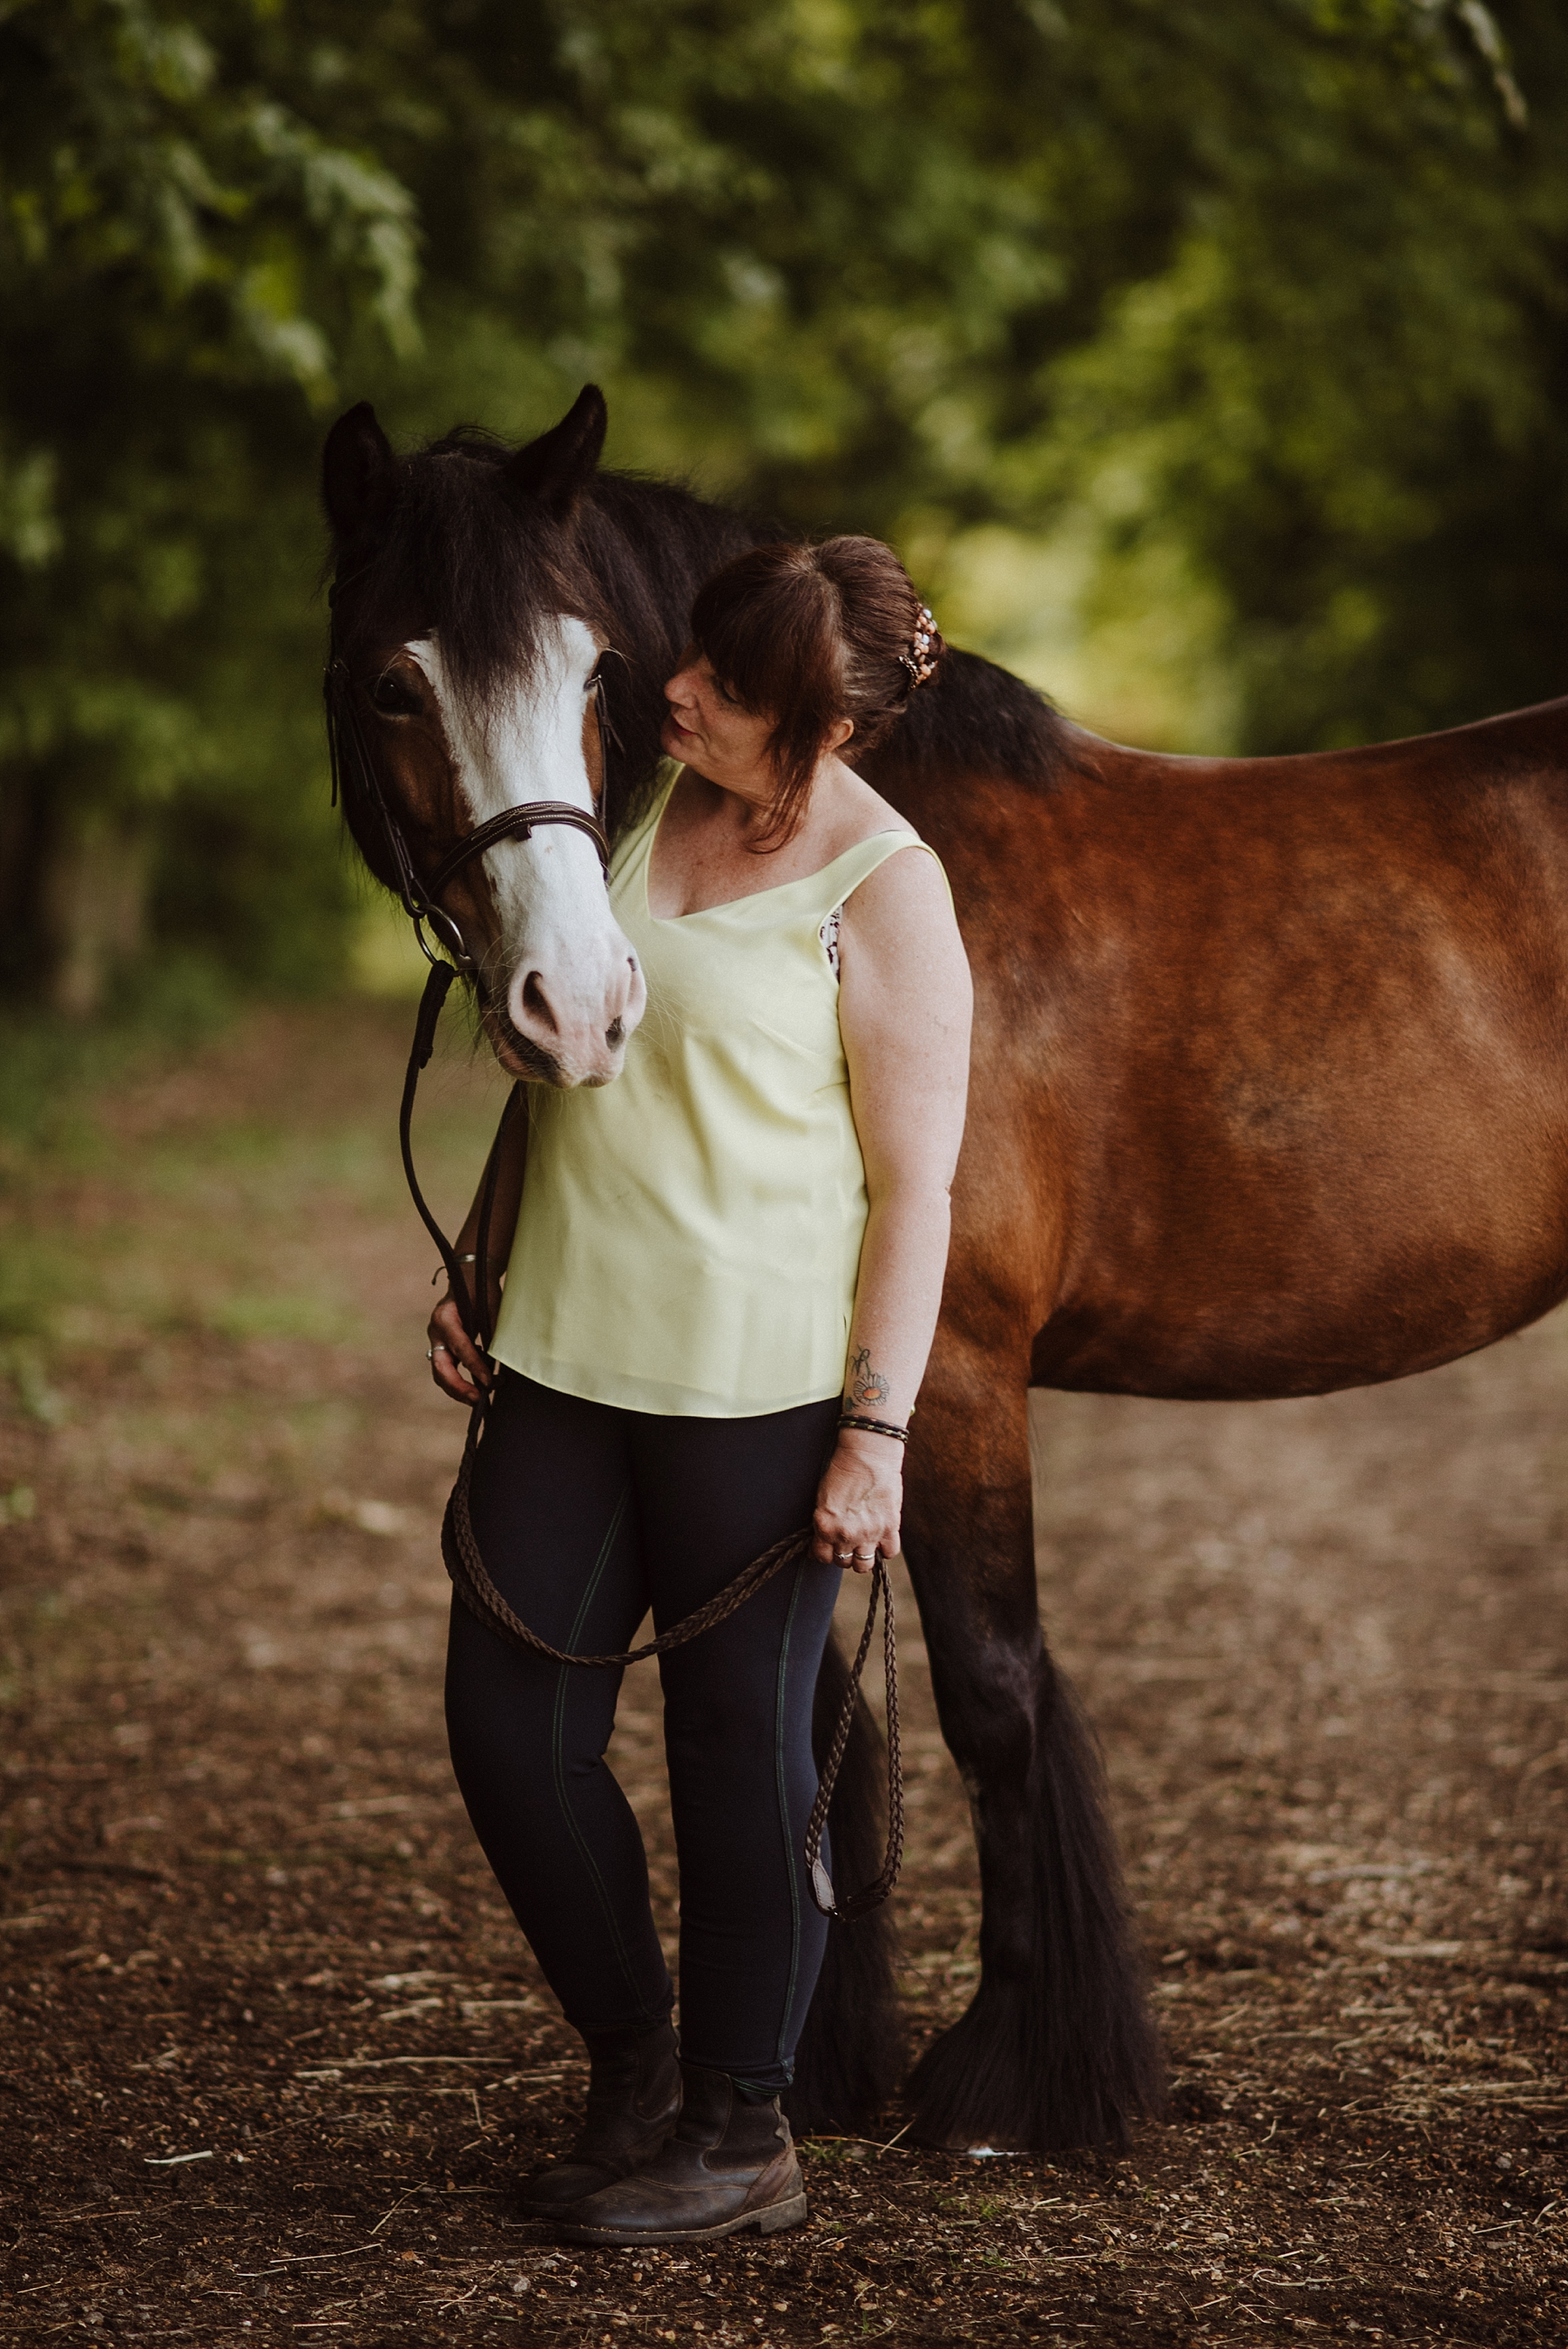 photographers who photograph horses in surrey